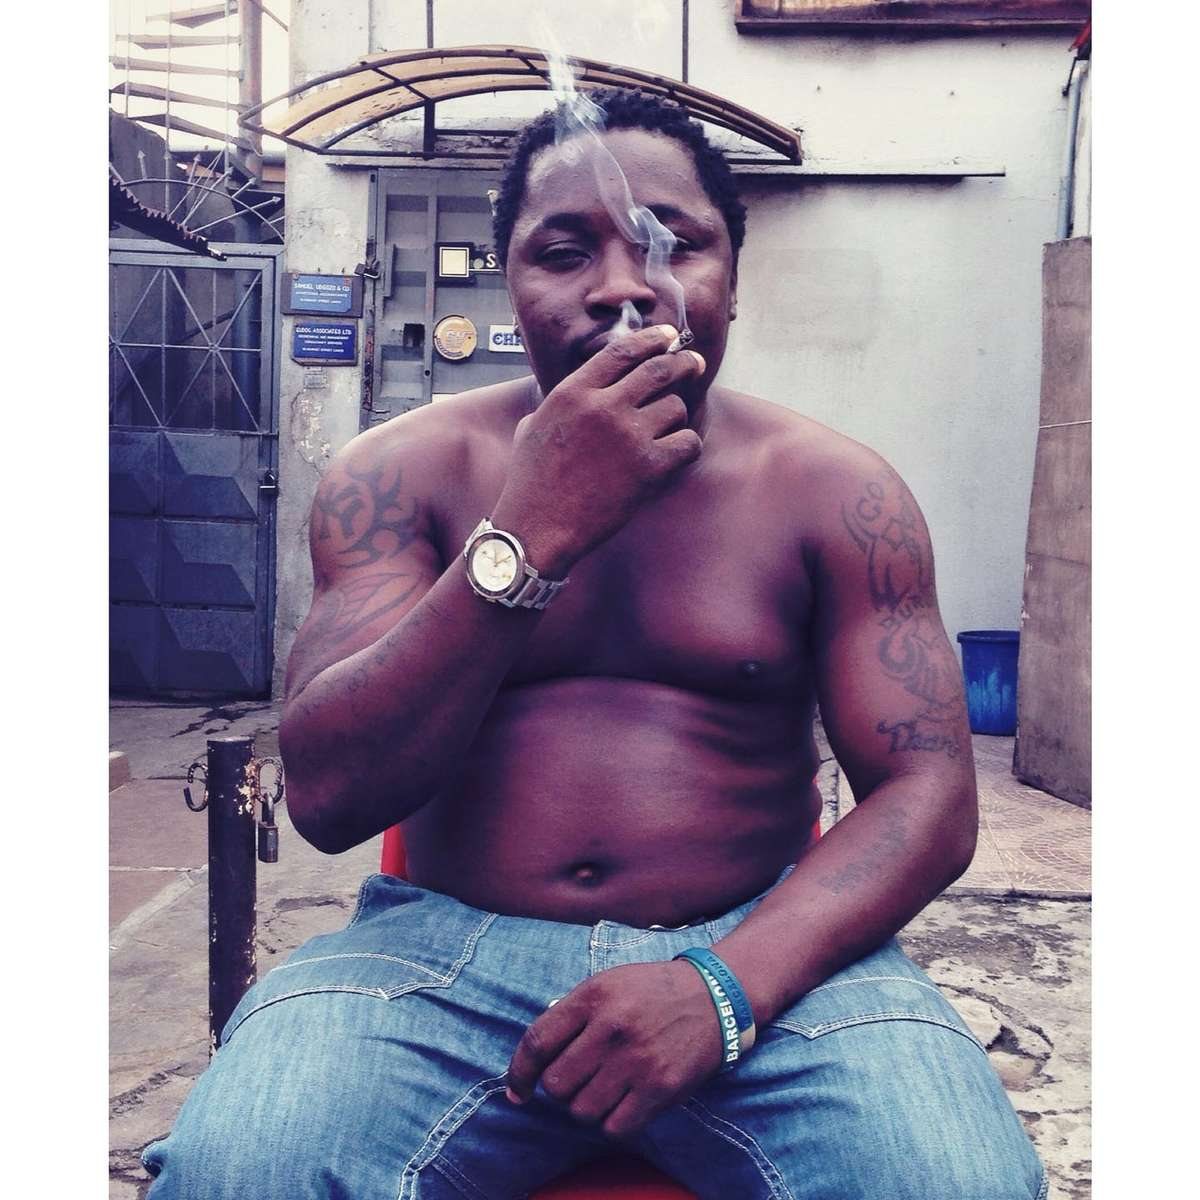 Area Boy smokes his morning J. Lagos, Nigeria. May 2014.